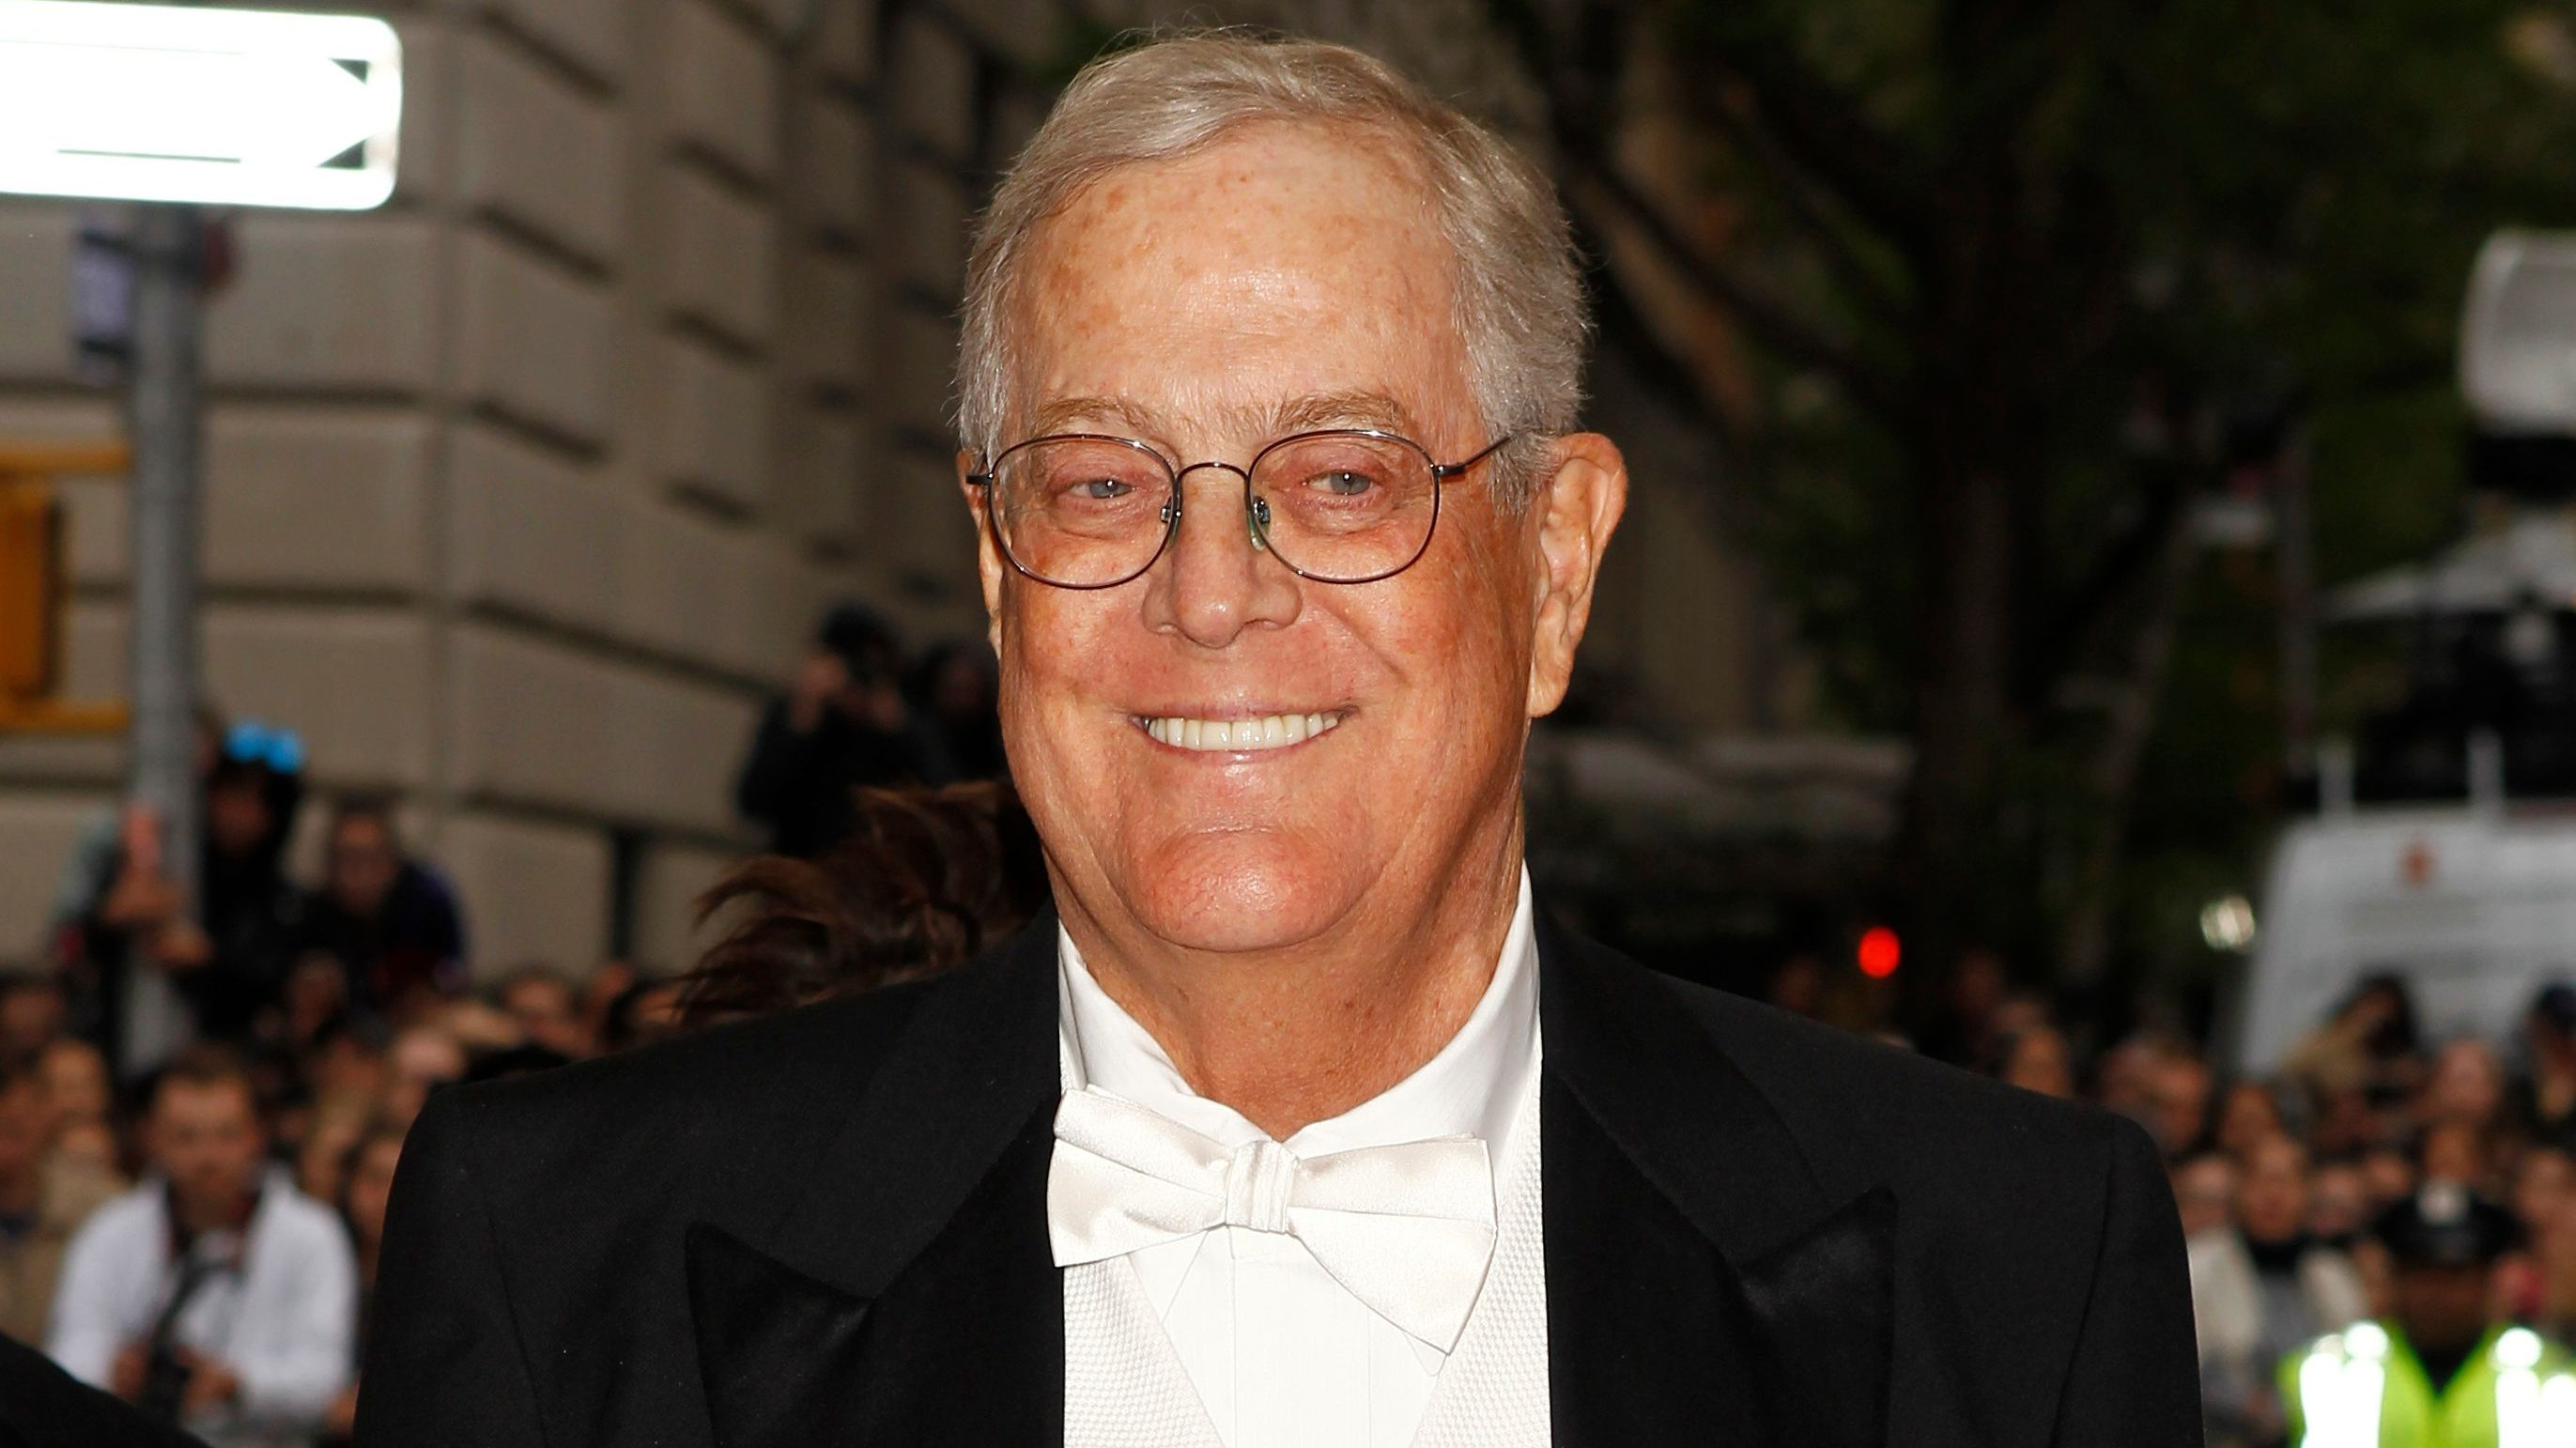 """Businessman David Koch arrives at the Metropolitan Museum of Art Costume Institute Gala Benefit celebrating the opening of """"Charles James: Beyond Fashion"""" in Upper Manhattan, New York May 5, 2014.  REUTERS/Carlo Allegri (UNITED STATES  - Tags: ENTERTAINMENT FASHION BUSINESS HEADSHOT)   - TB3EA5607U13C"""